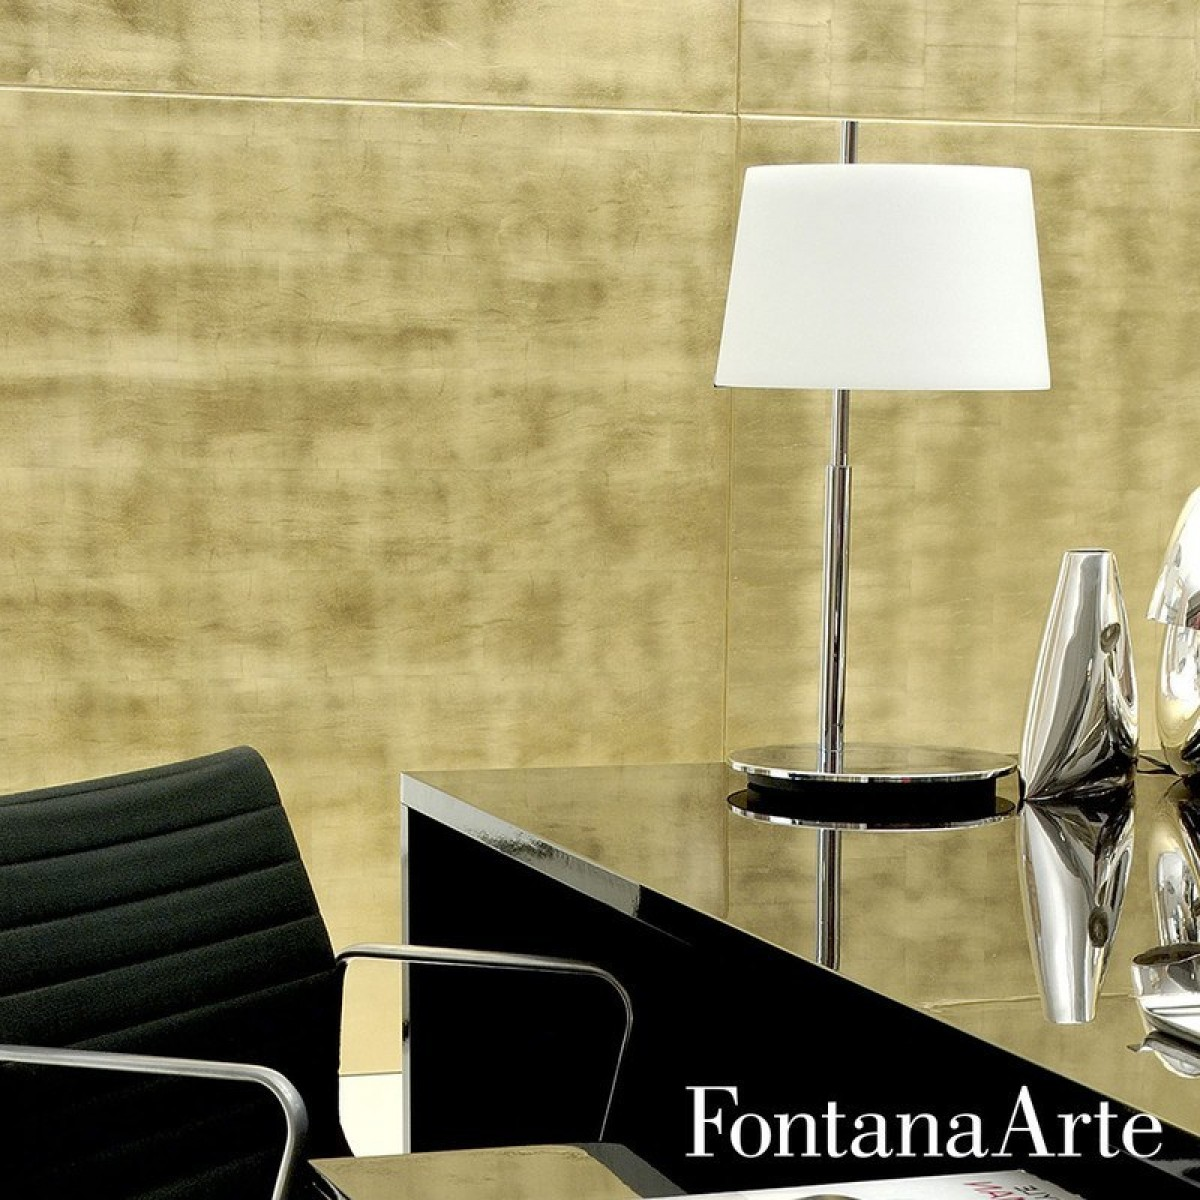 fontanaarte passion little table lamp outlet. Black Bedroom Furniture Sets. Home Design Ideas